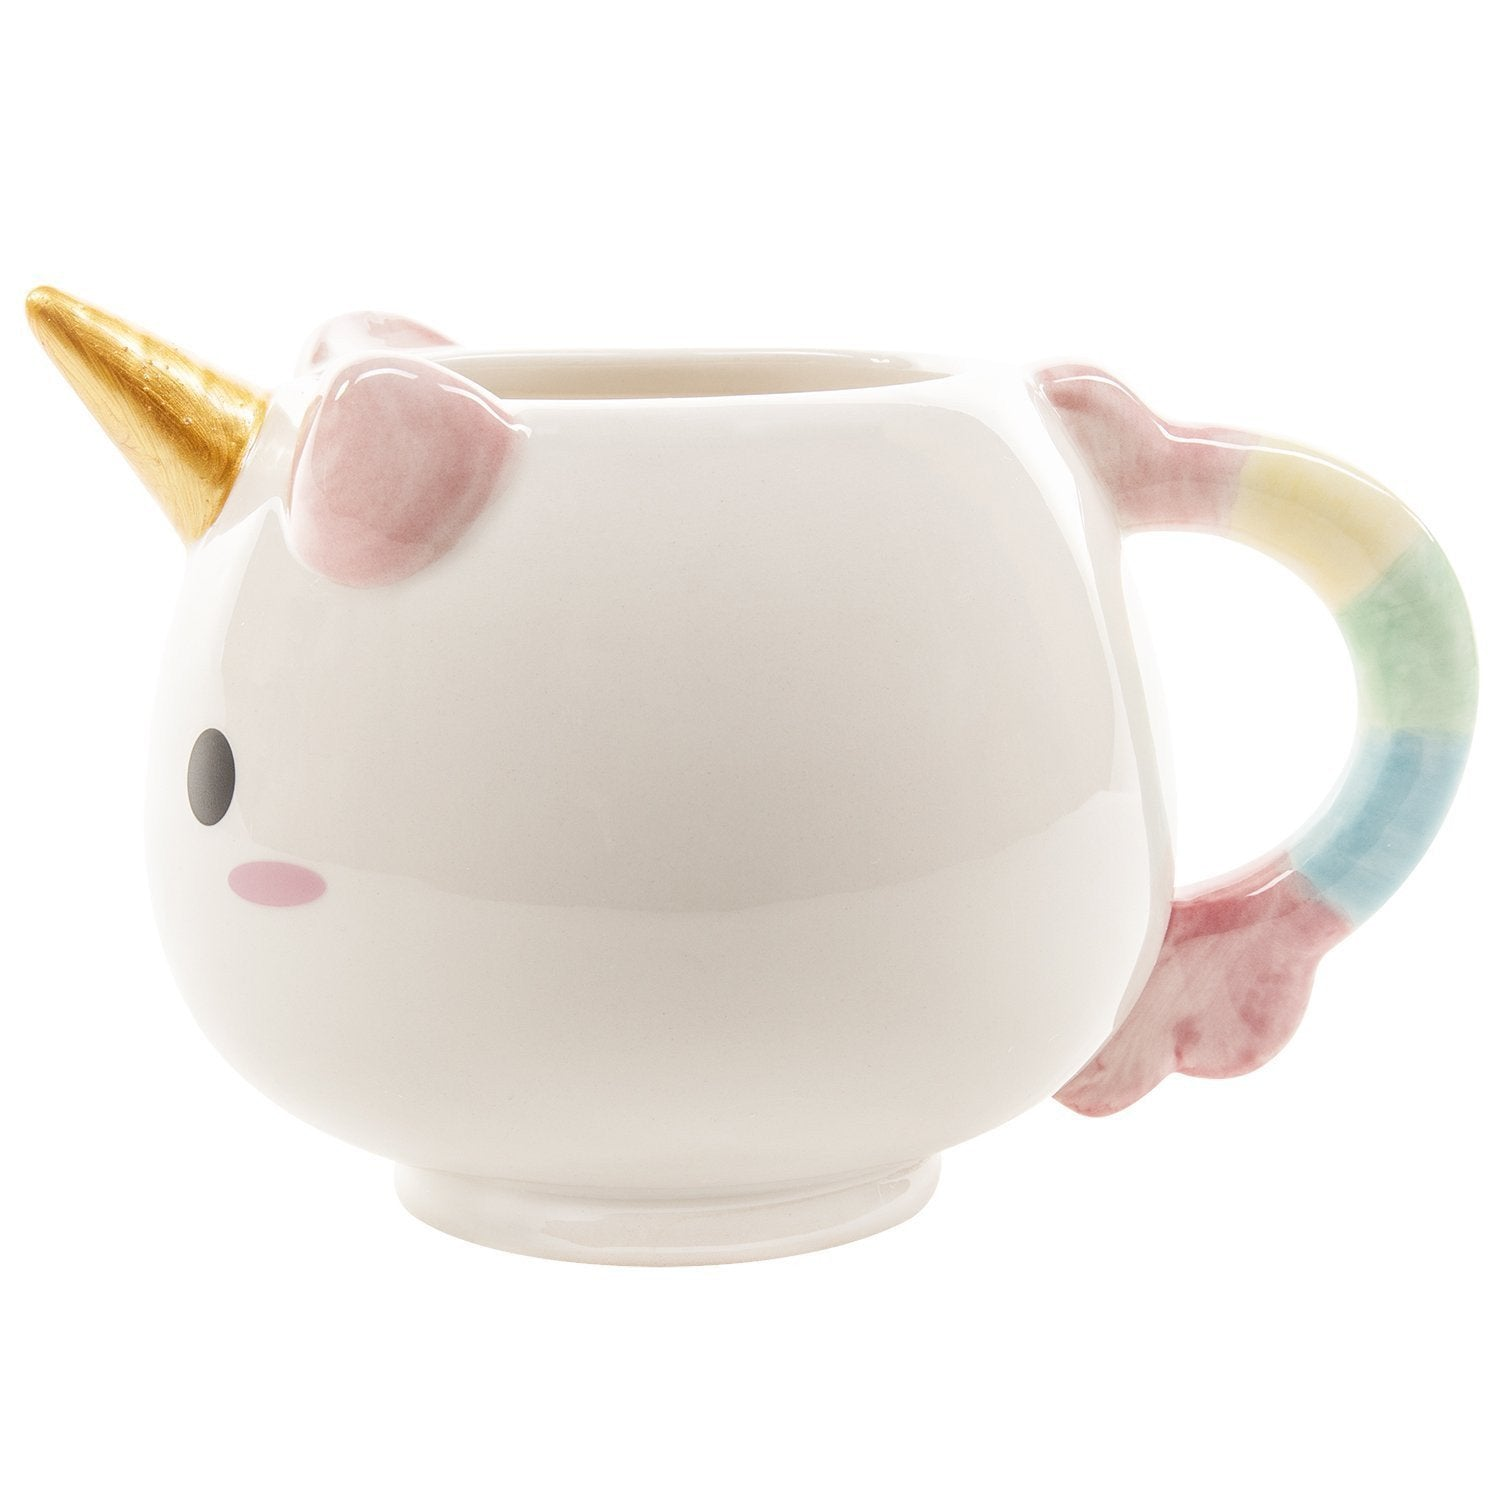 Smoko Now Mugs Elodie Unicorn Mug 0720252998992 tween and teen